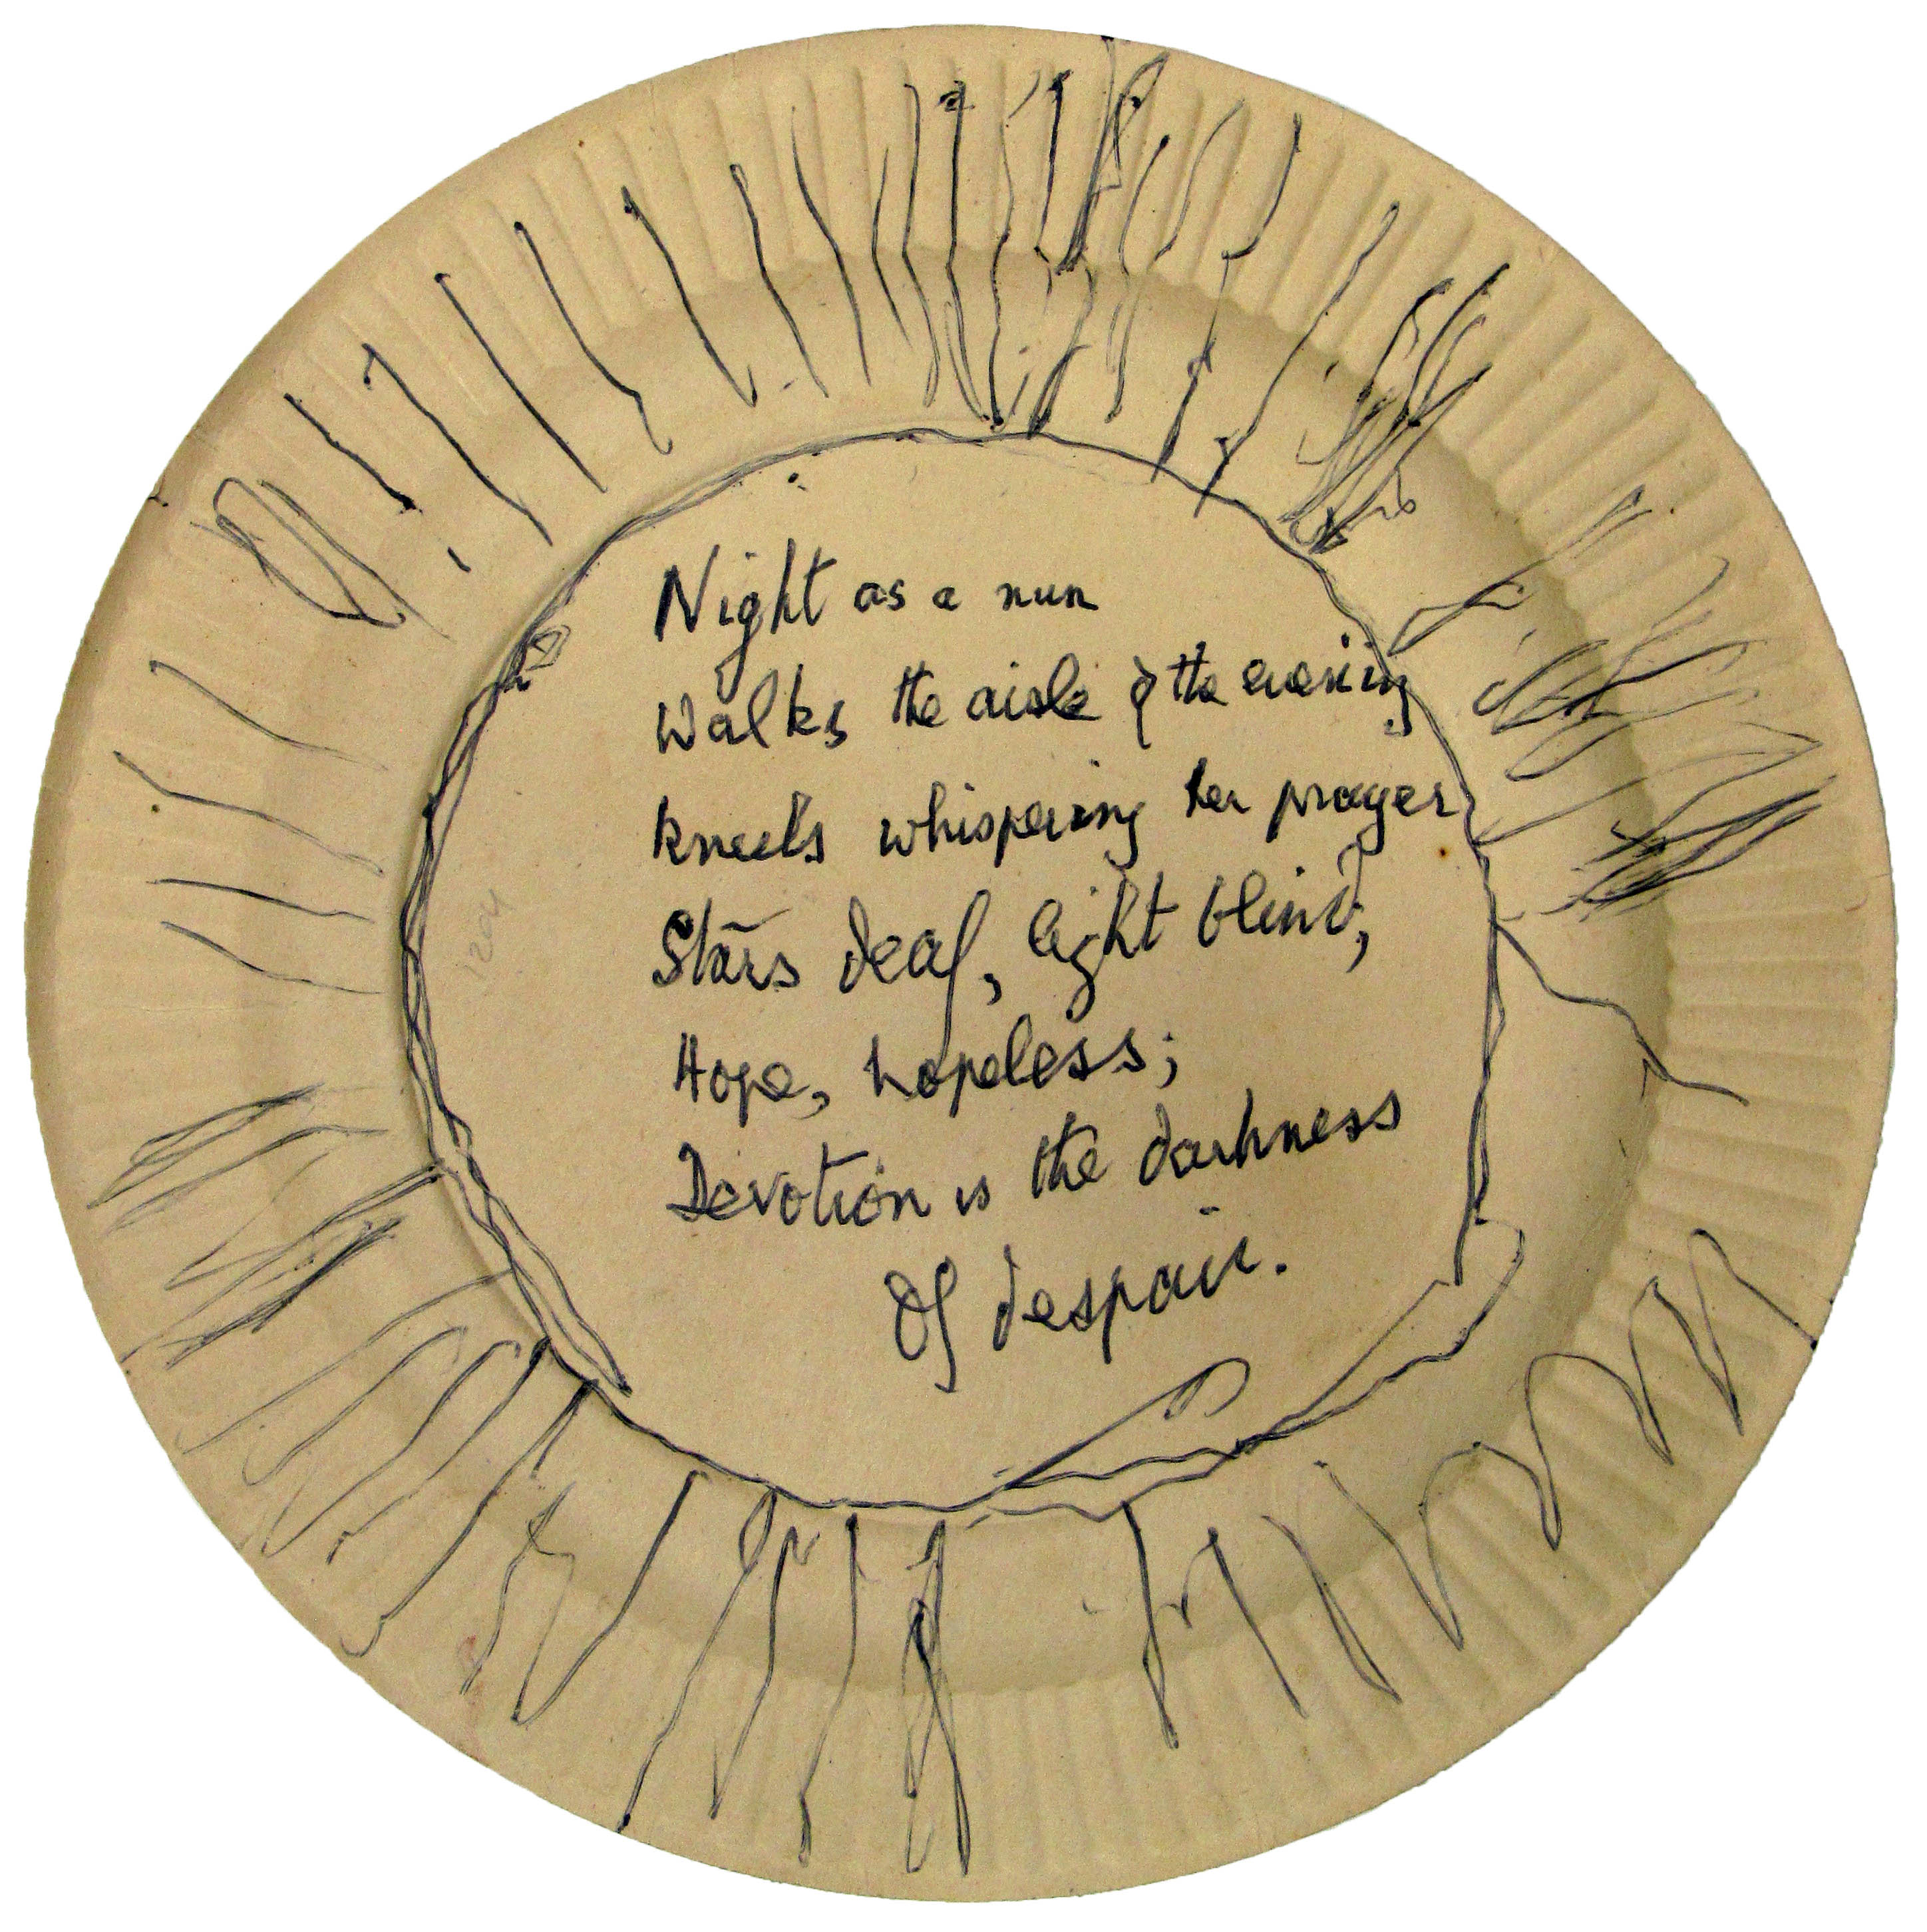 EUL MS 397/1024 Unpublished manuscript poem on the back of a paper plate